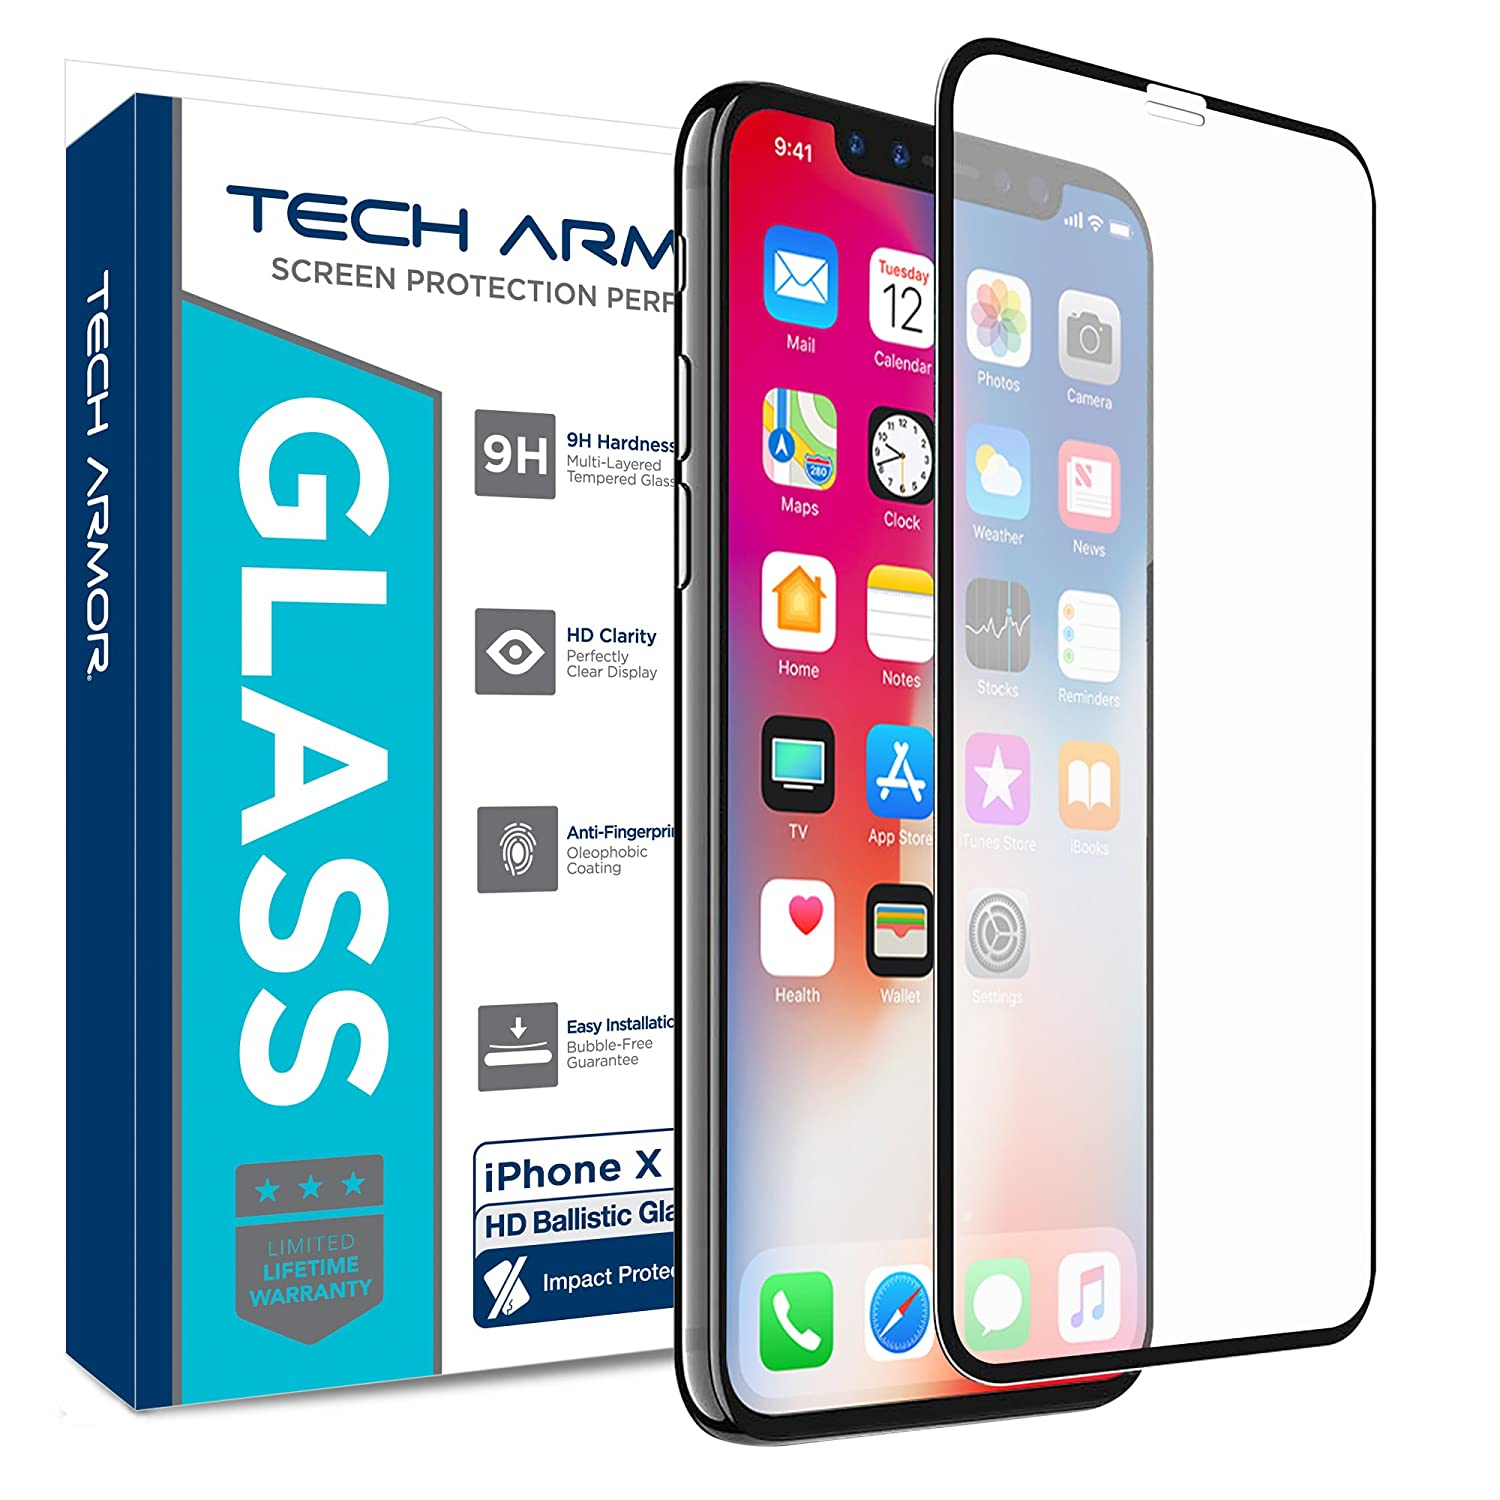 sale retailer fa800 b8d24 Tech Armor Edge to Edge Glass Screen Protector for Apple iPhone X/Xs -  Case-Friendly Tempered Glass, 3D Touch Accurate (Black) [1-Pack]